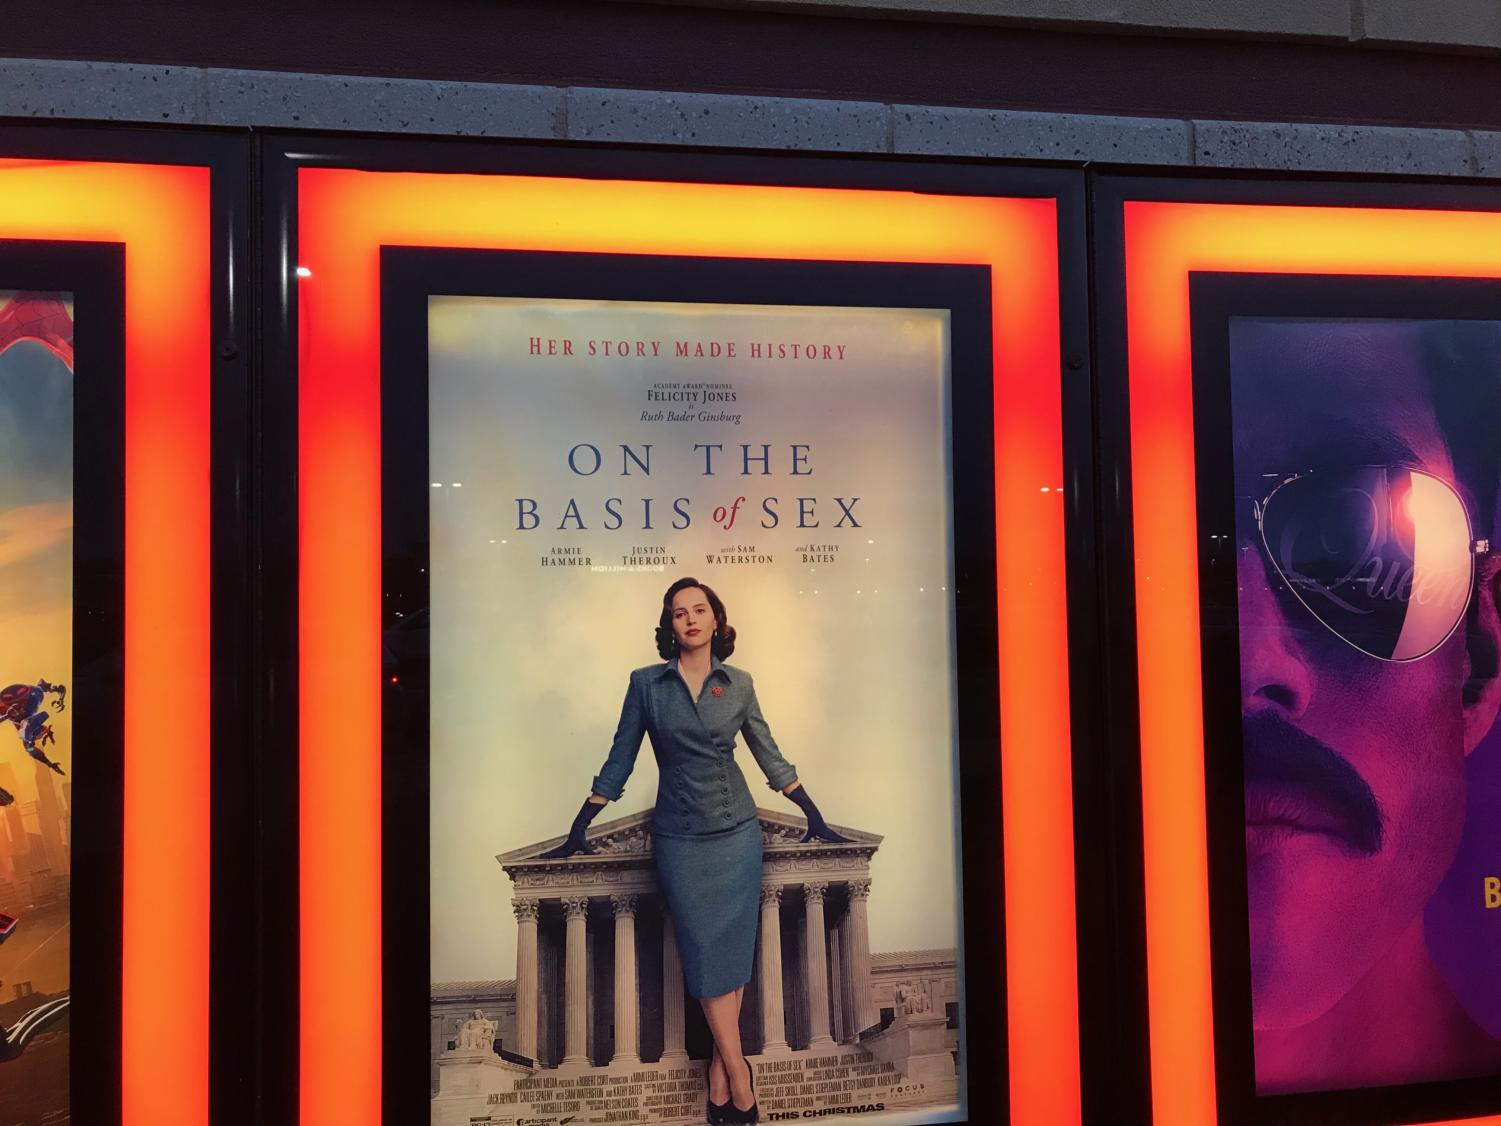 On the Basis of Sex makes its debut on Christmas Day 2018.